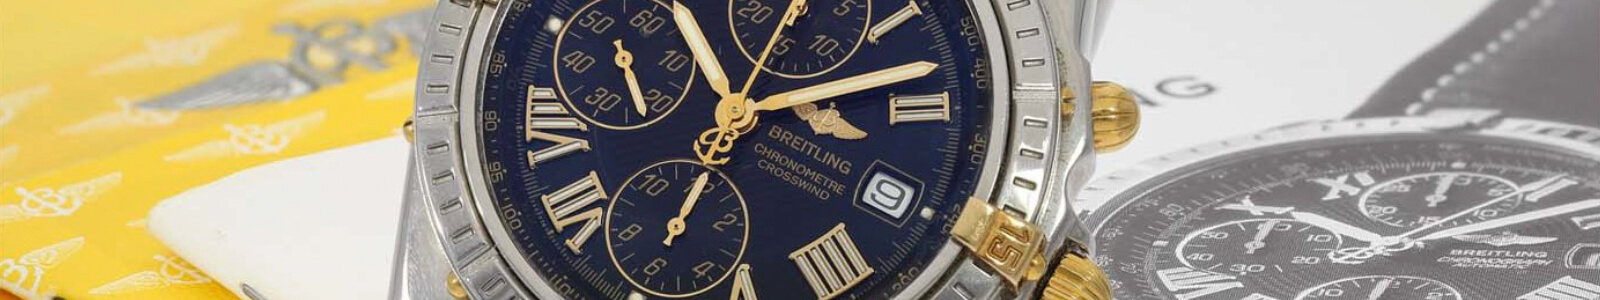 174. Auction: High Quality Wrist Watches And Pocket Watches, Fine Collector's Watches